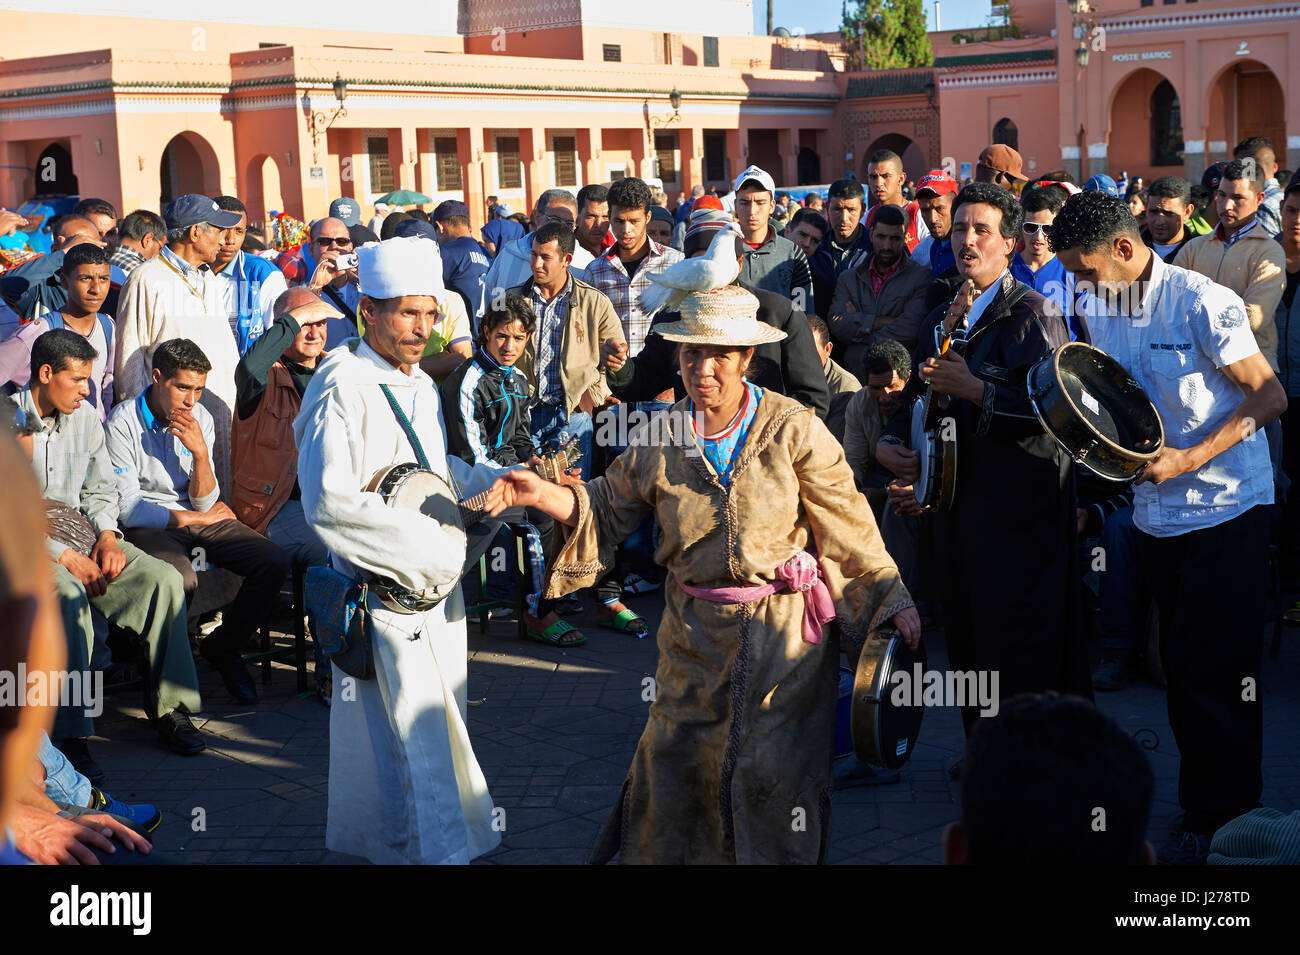 Entertainers in the Jemaa el-Fnaa square in  Marrakech, Morocco - Stock Image